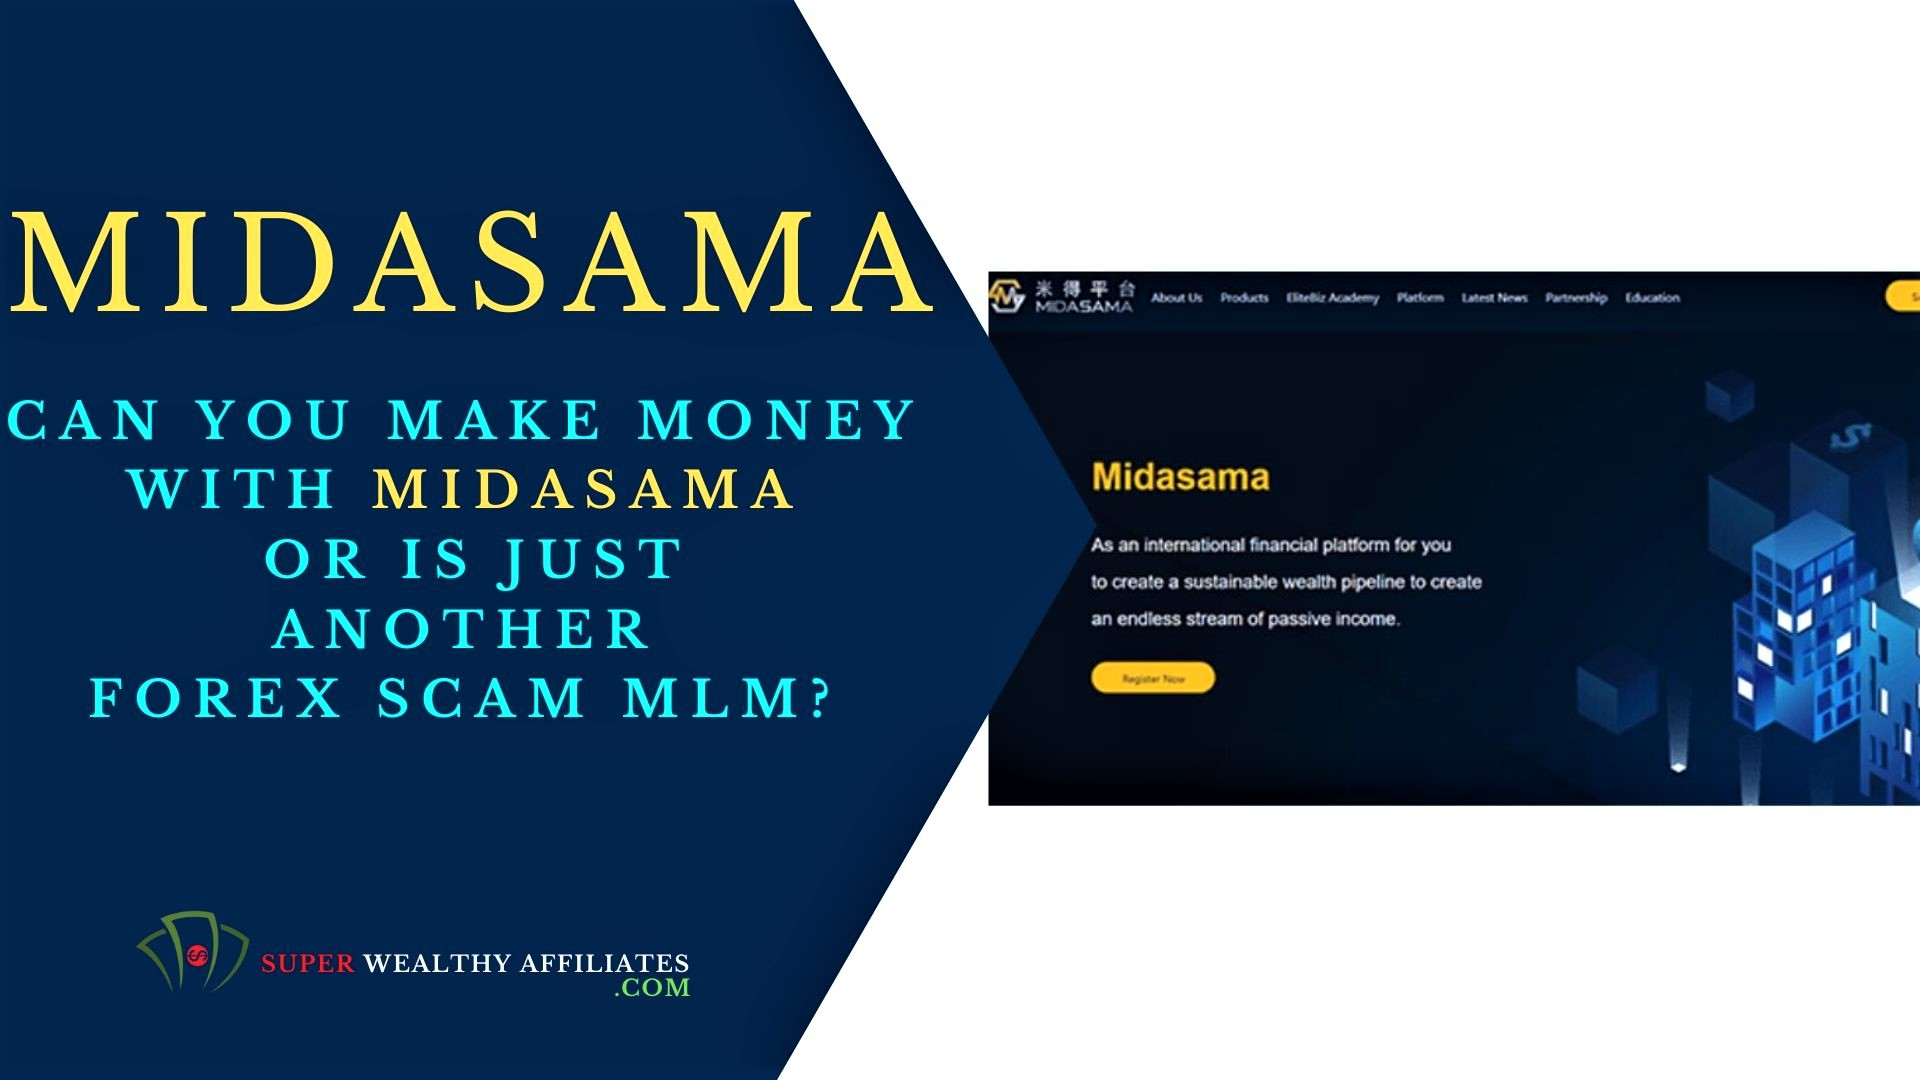 Midasama Forex MLM review